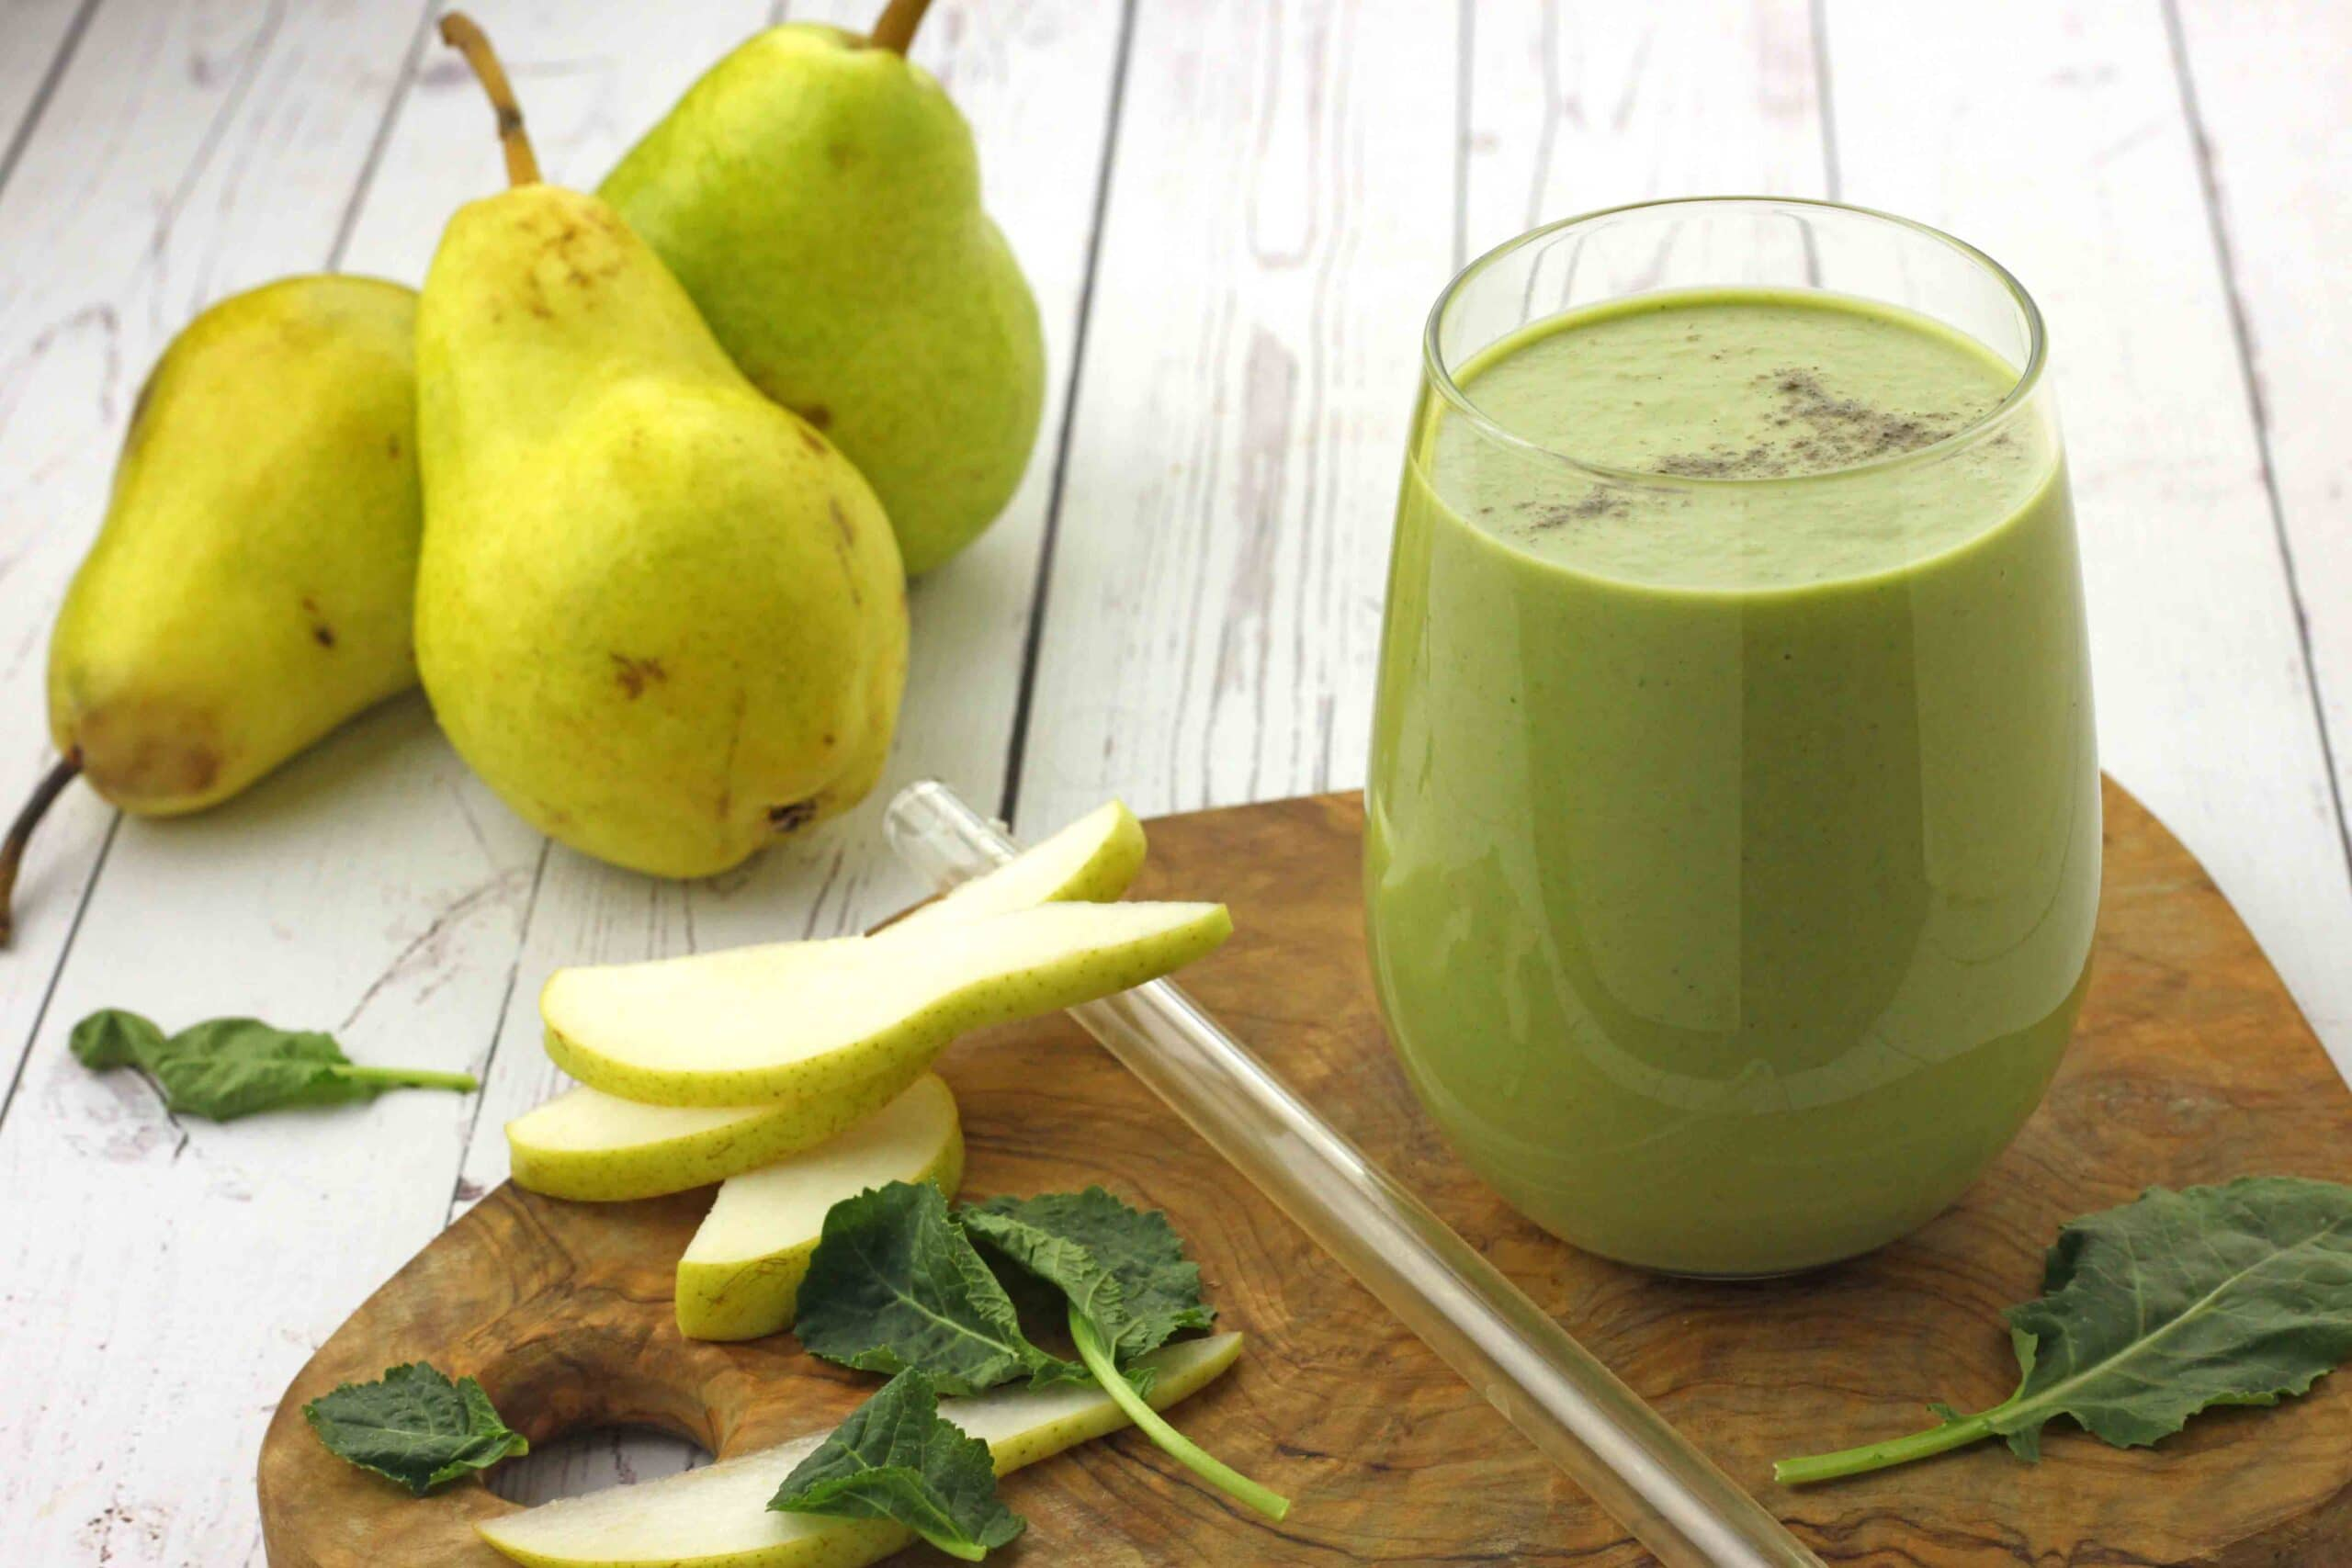 Spiced Pear Smoothie by Jesse Lane Lee